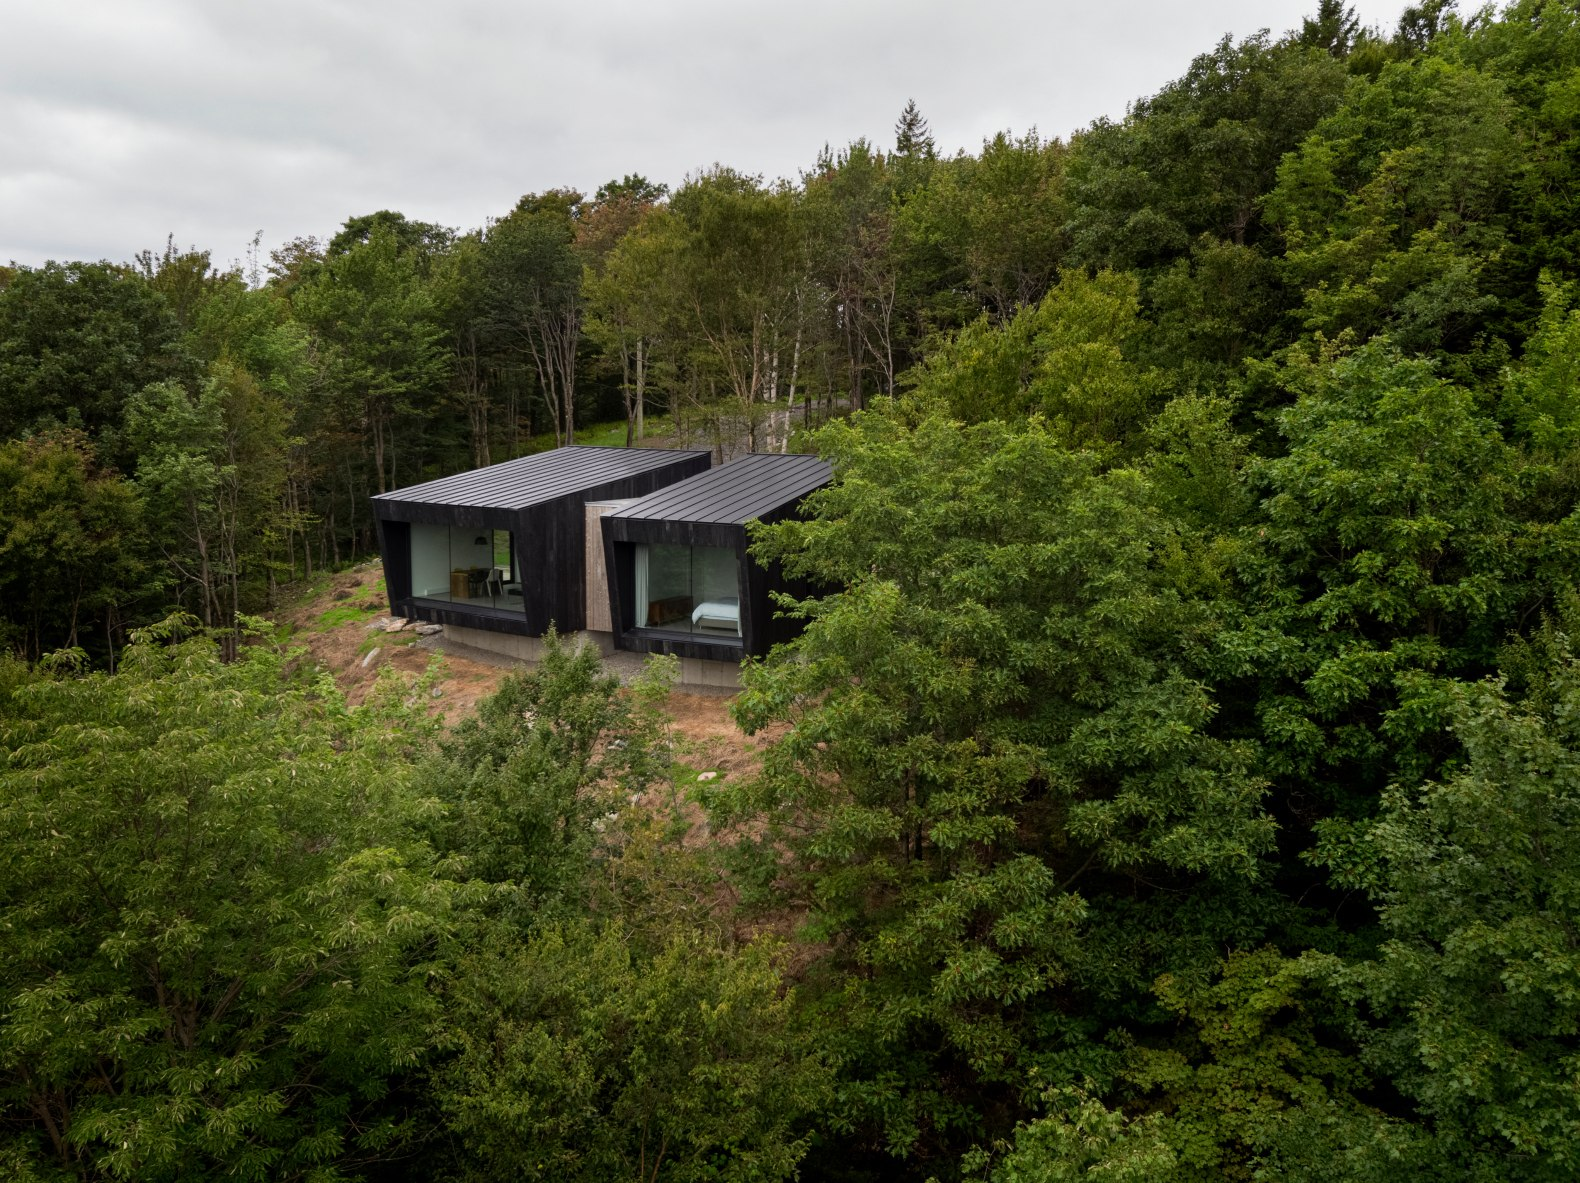 Two moody, tranquil cabins perch above a Quebec forest